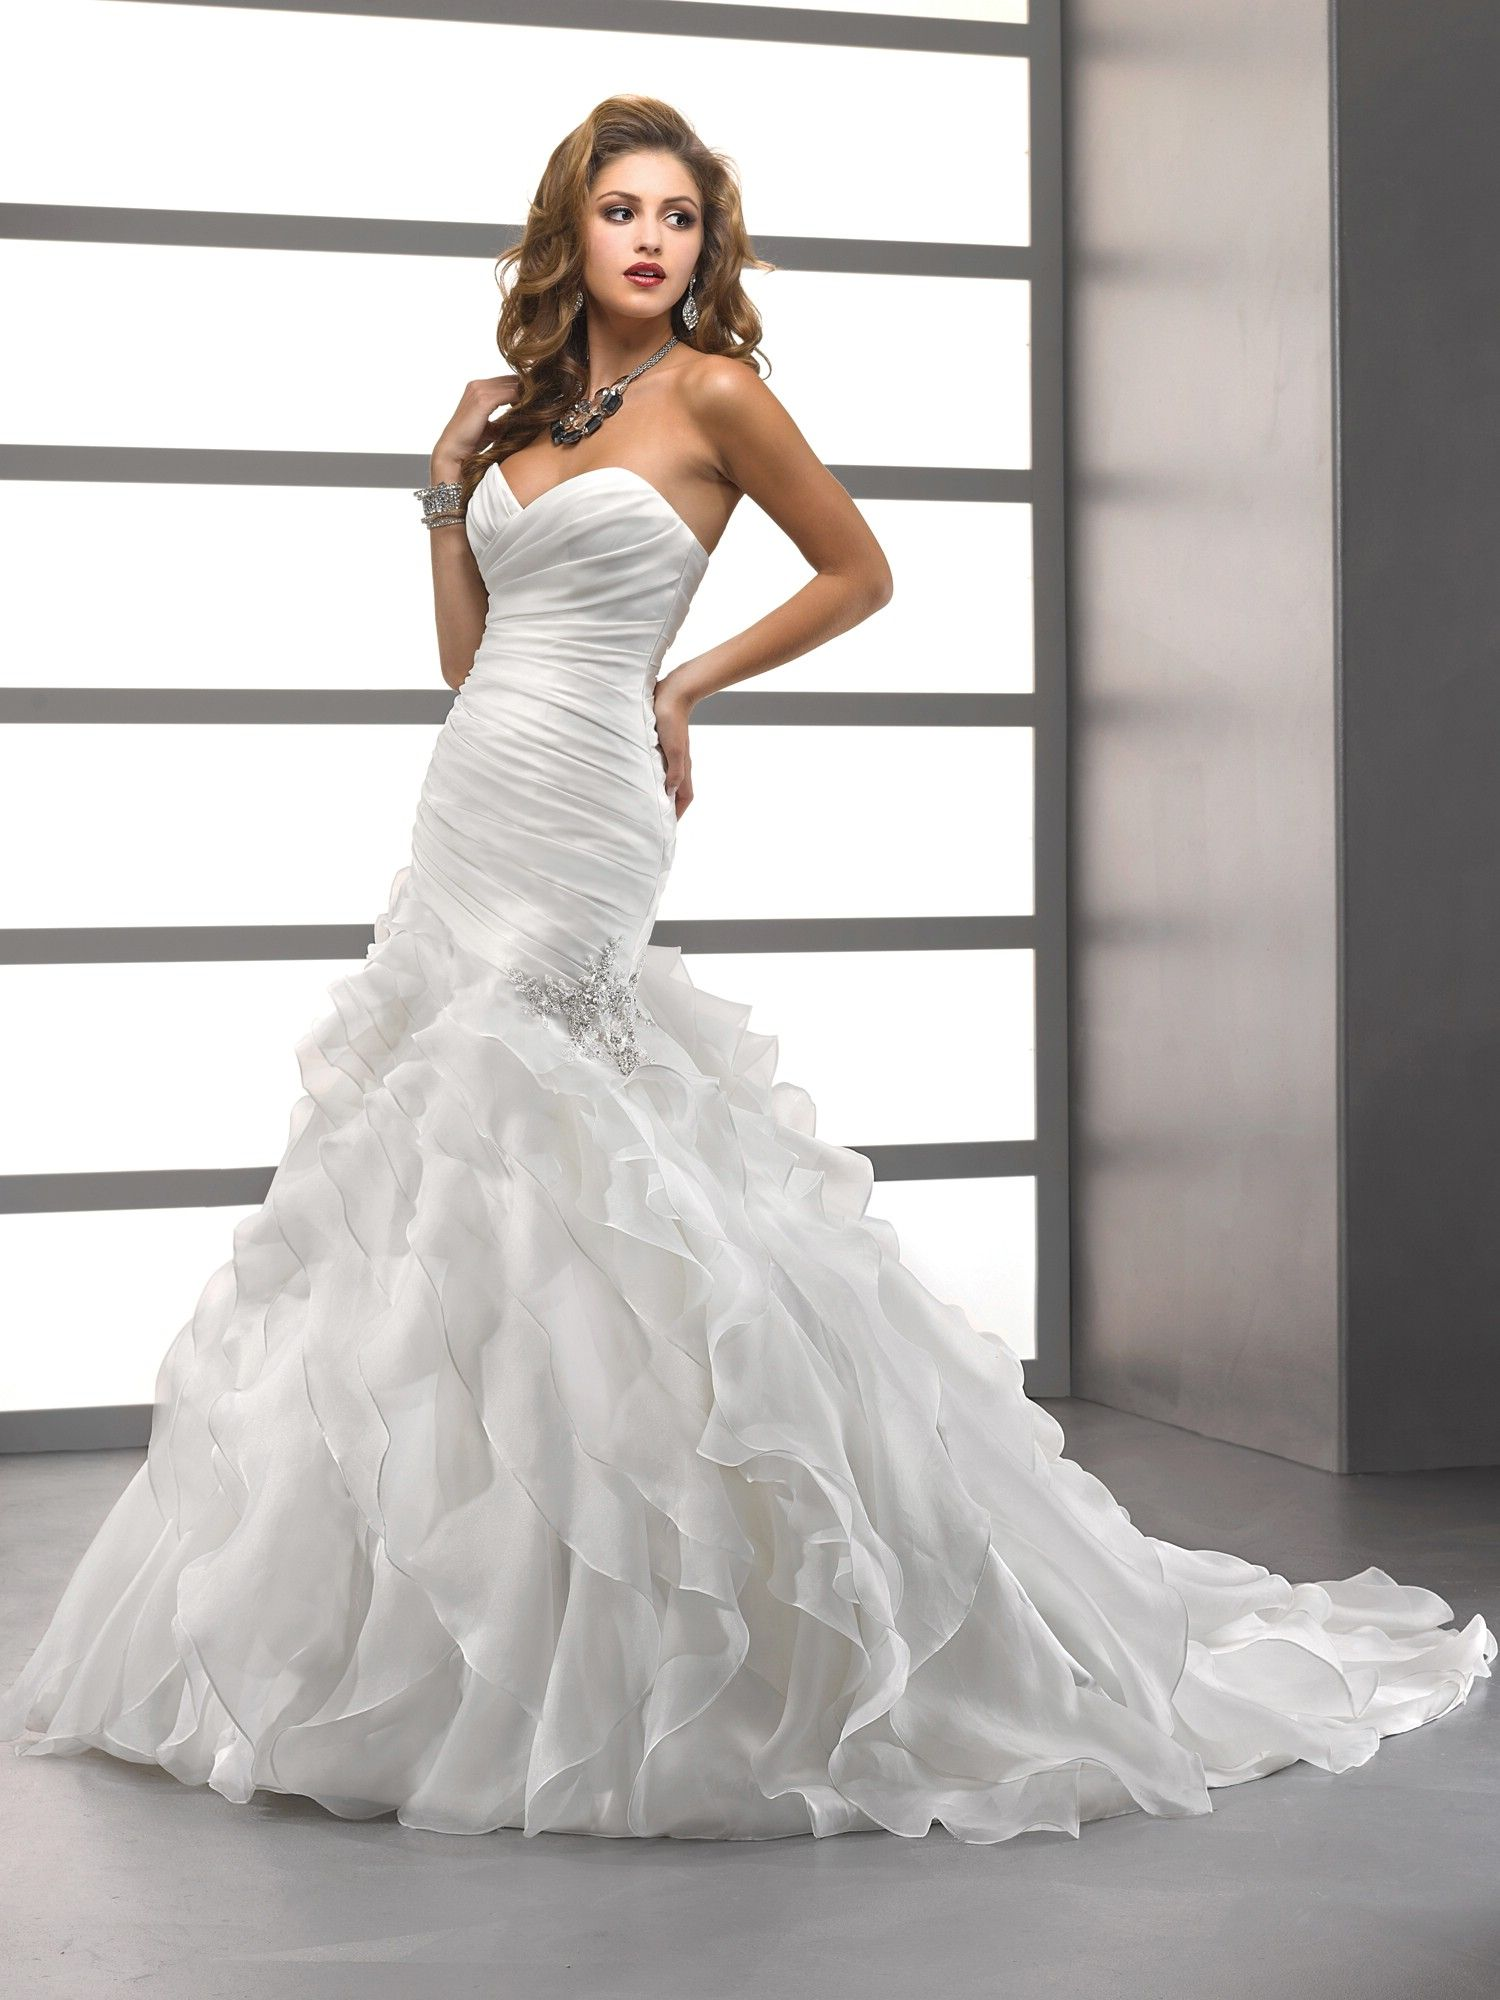 Sottero midgley wedding dresses kallin 84523 2013 sottero and sottero midgley wedding dresses kallin 84523 2013 sottero and midgley dress kallin 84523 bestbridalprices ombrellifo Image collections